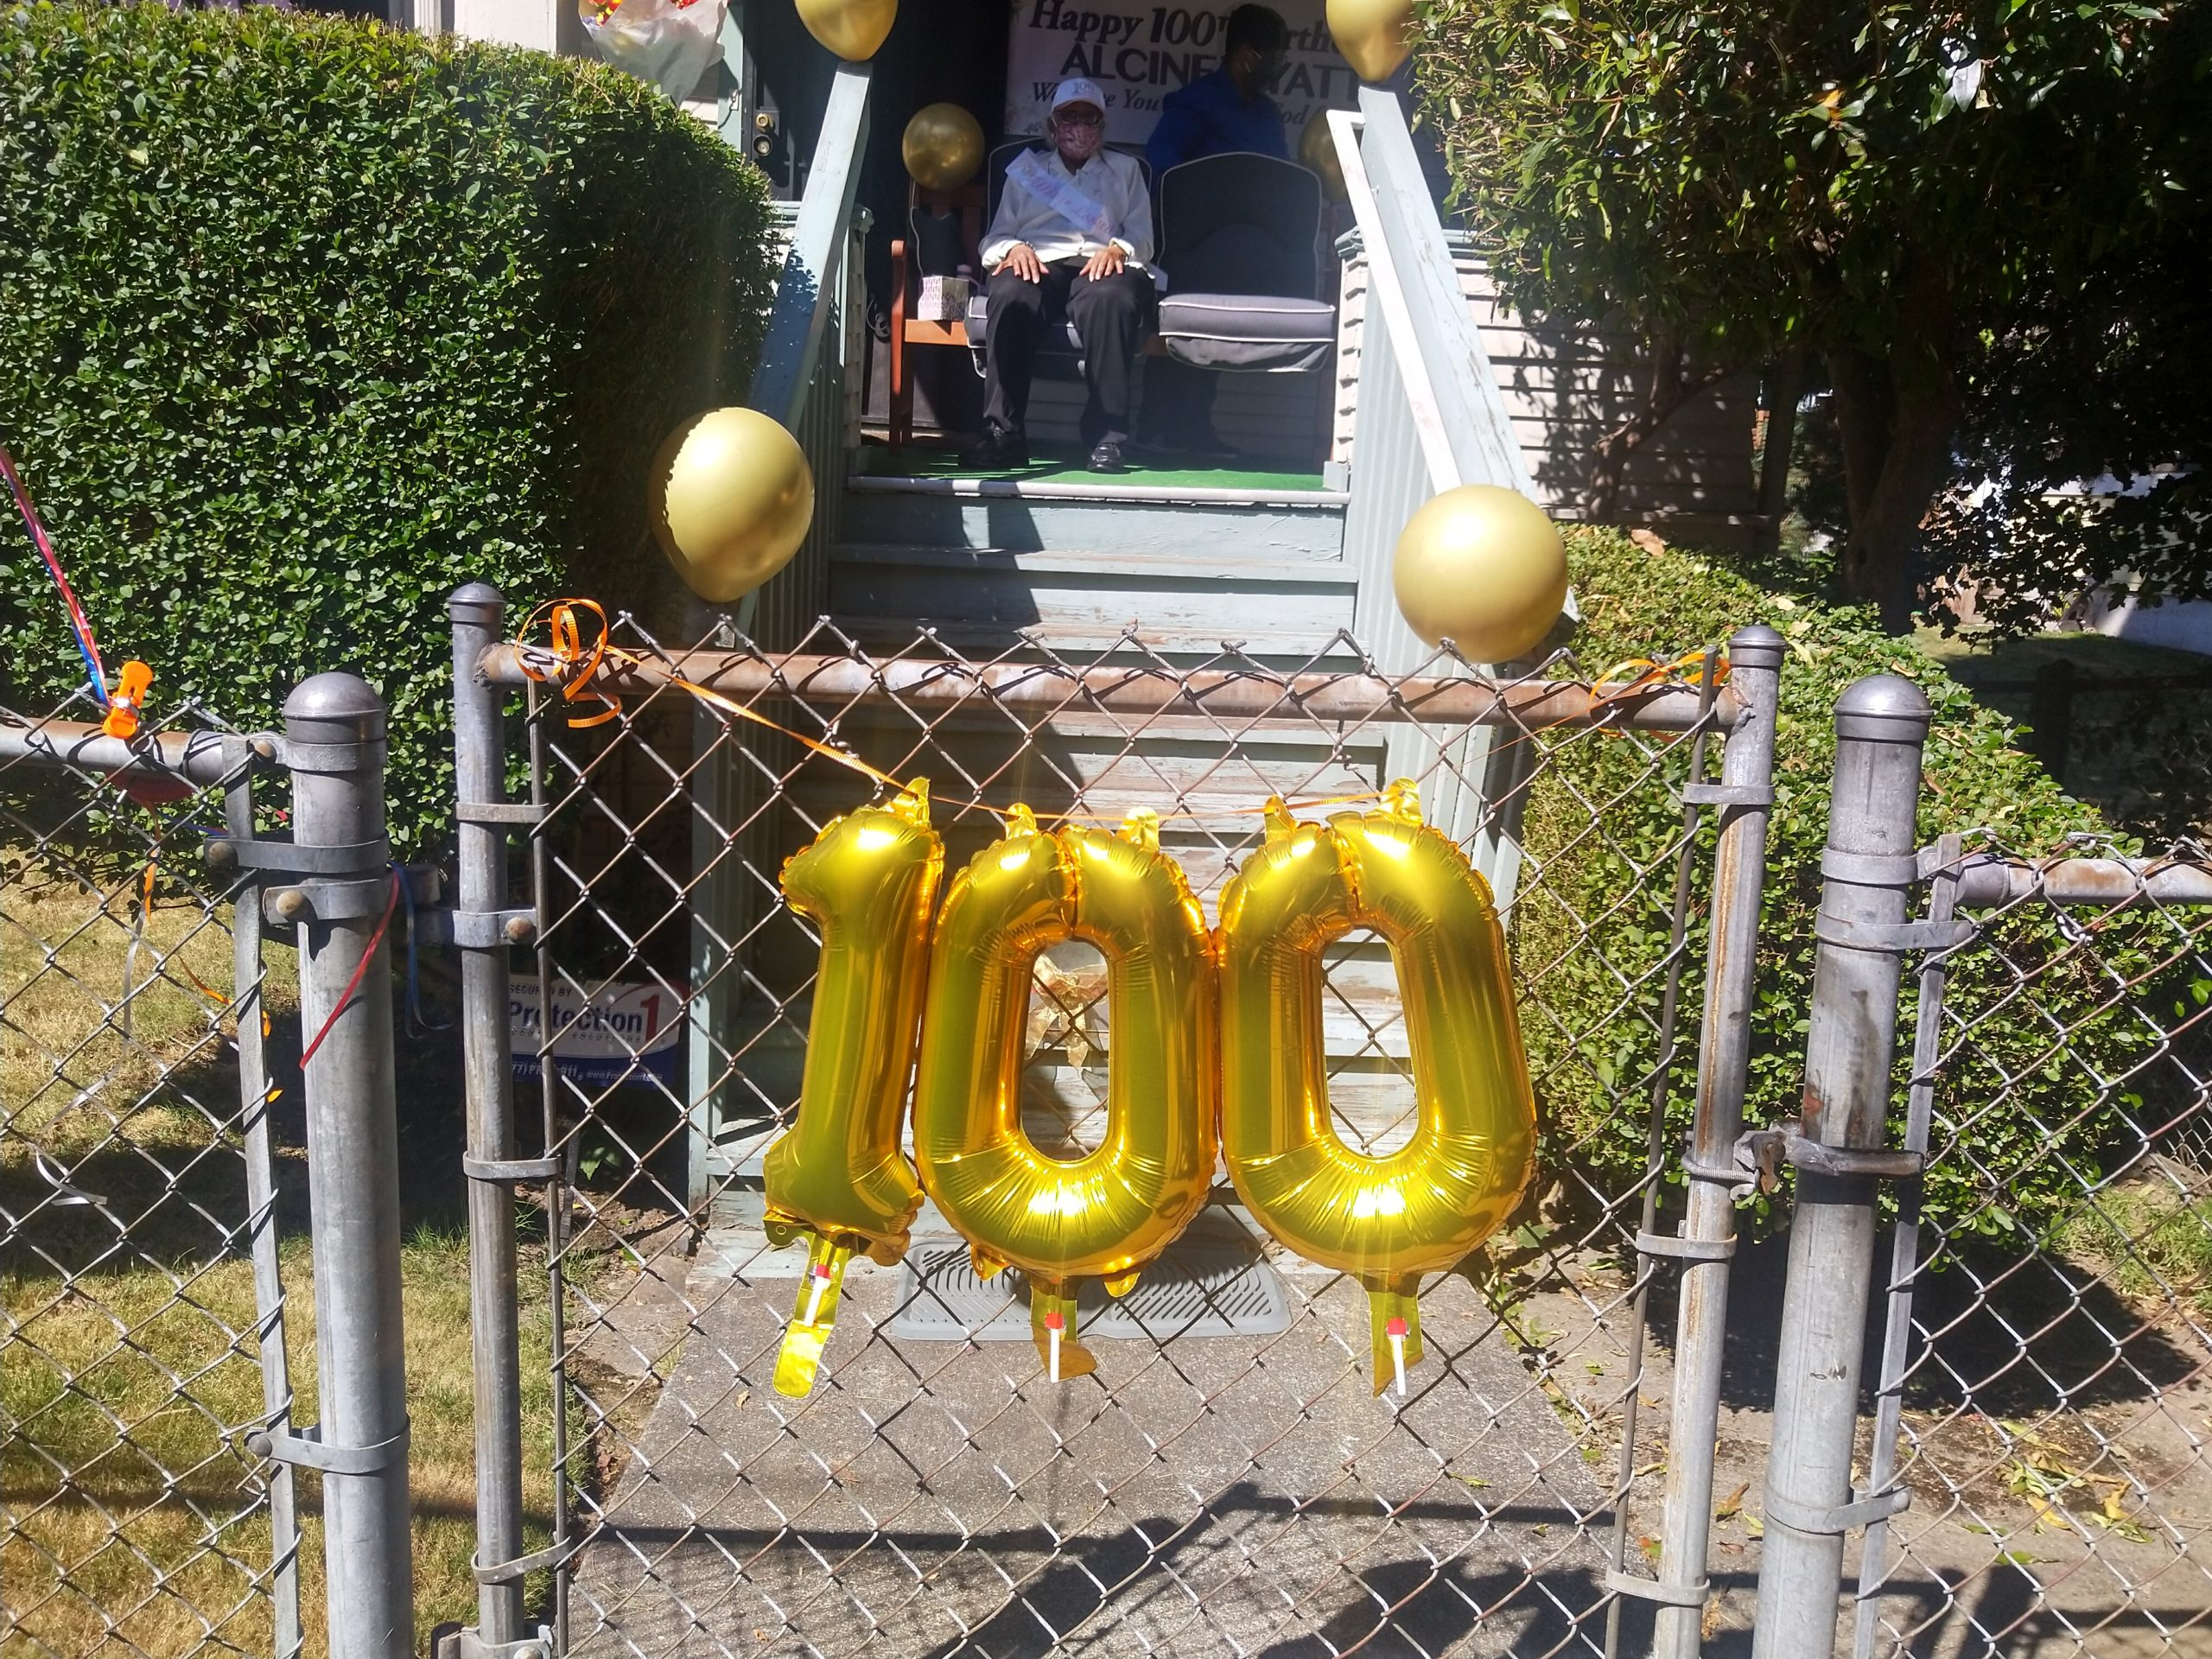 Image description: A chain link fence decorate with balloons in the shape of the number 100. Behind the fence is a porch, and on the porch sits an elderly woman wearing a birthday sash.